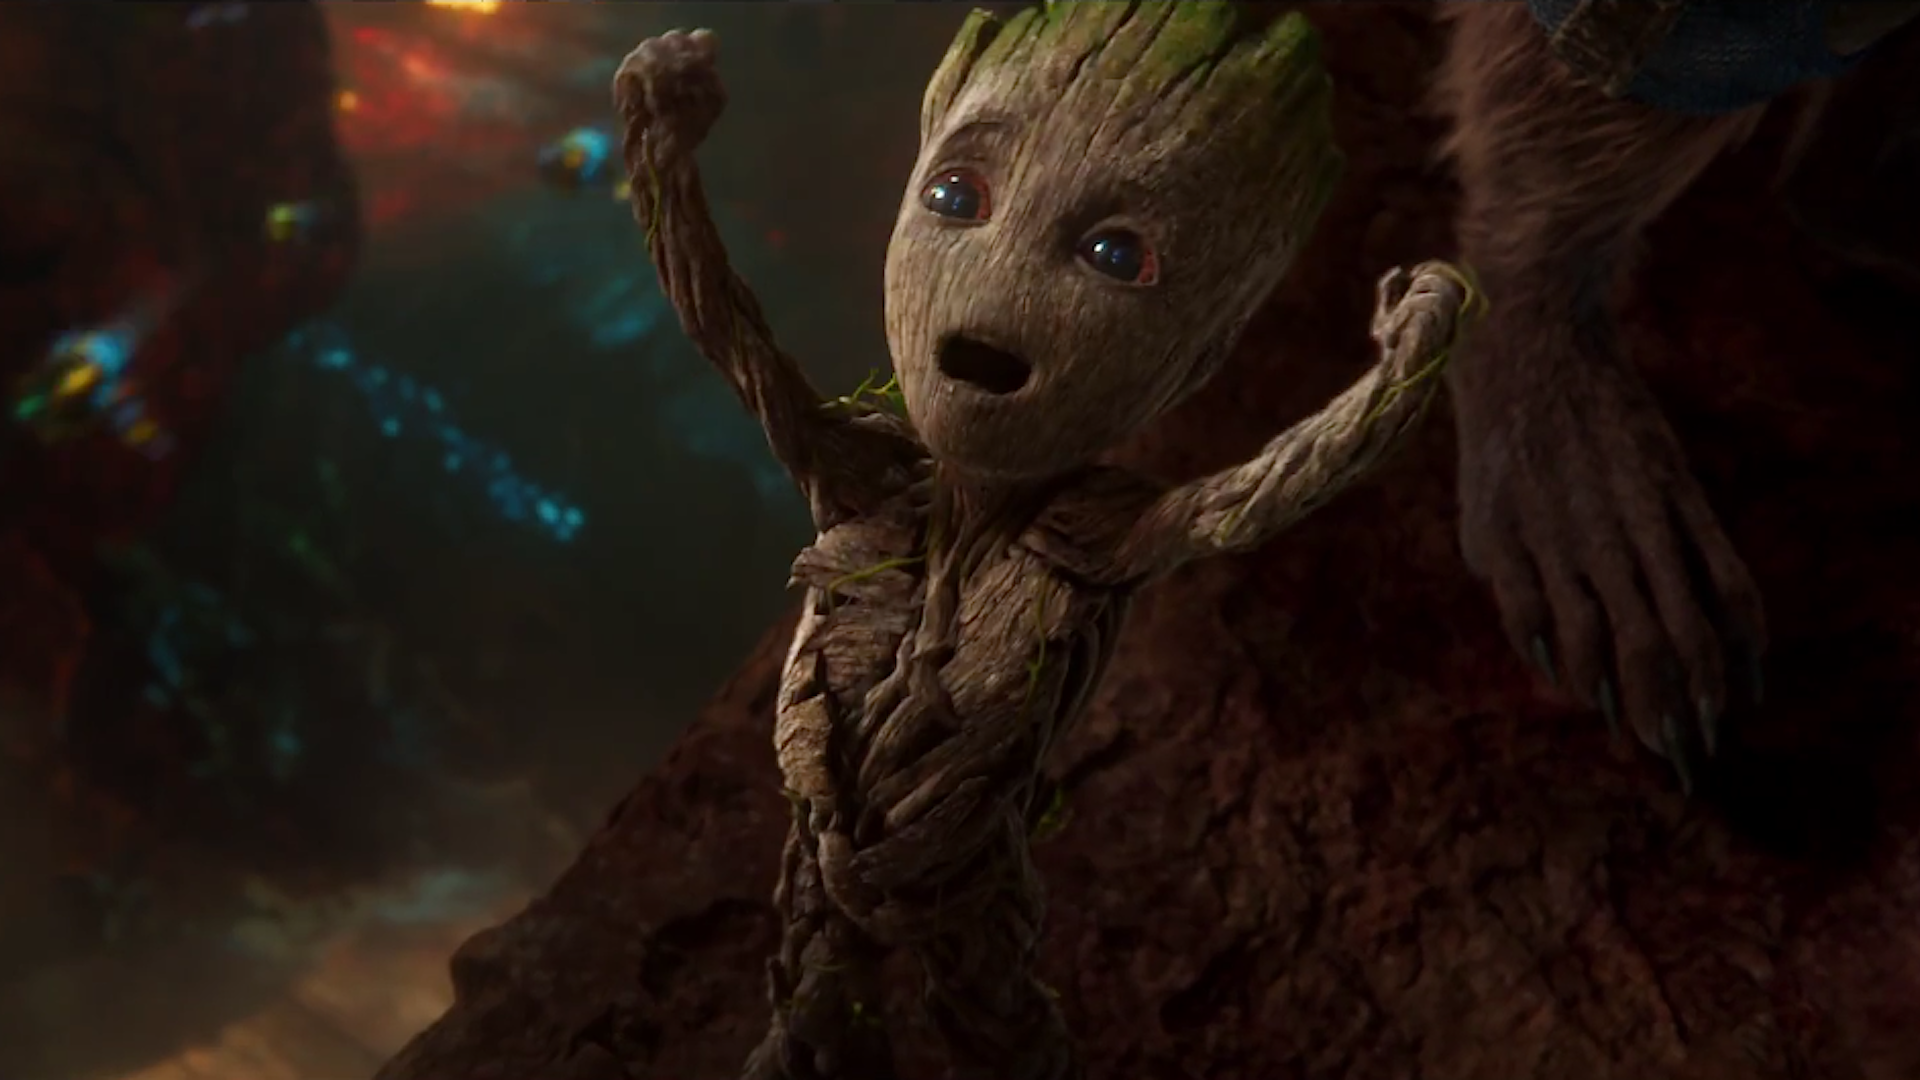 Baby Groot Wallpapers Hd Wallpapers In 2019 Guardians Of